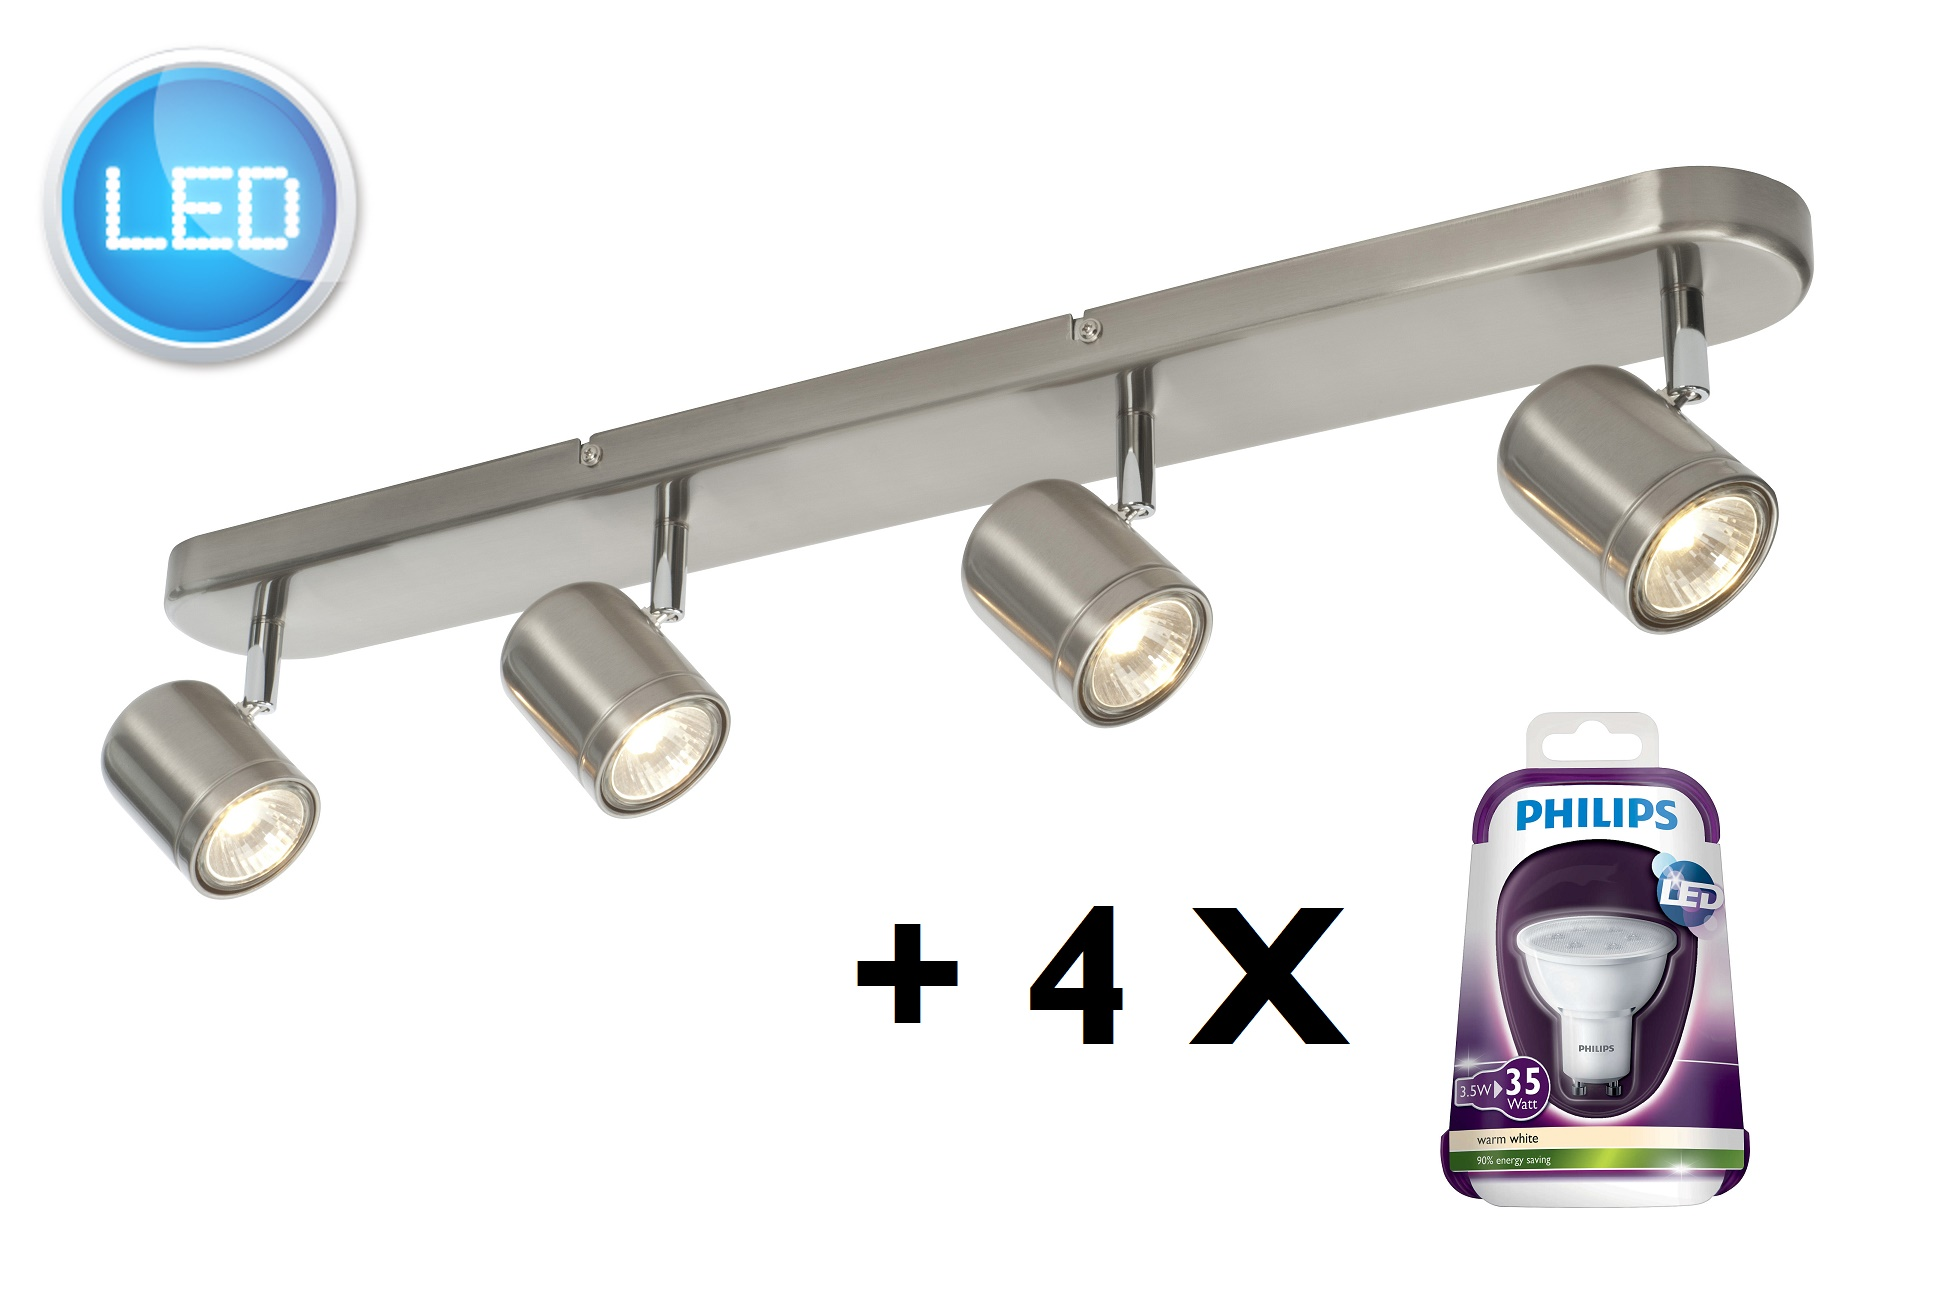 Philips Led Ceiling Lights Catalogues : Modern brushed chrome way ceiling spot light bar